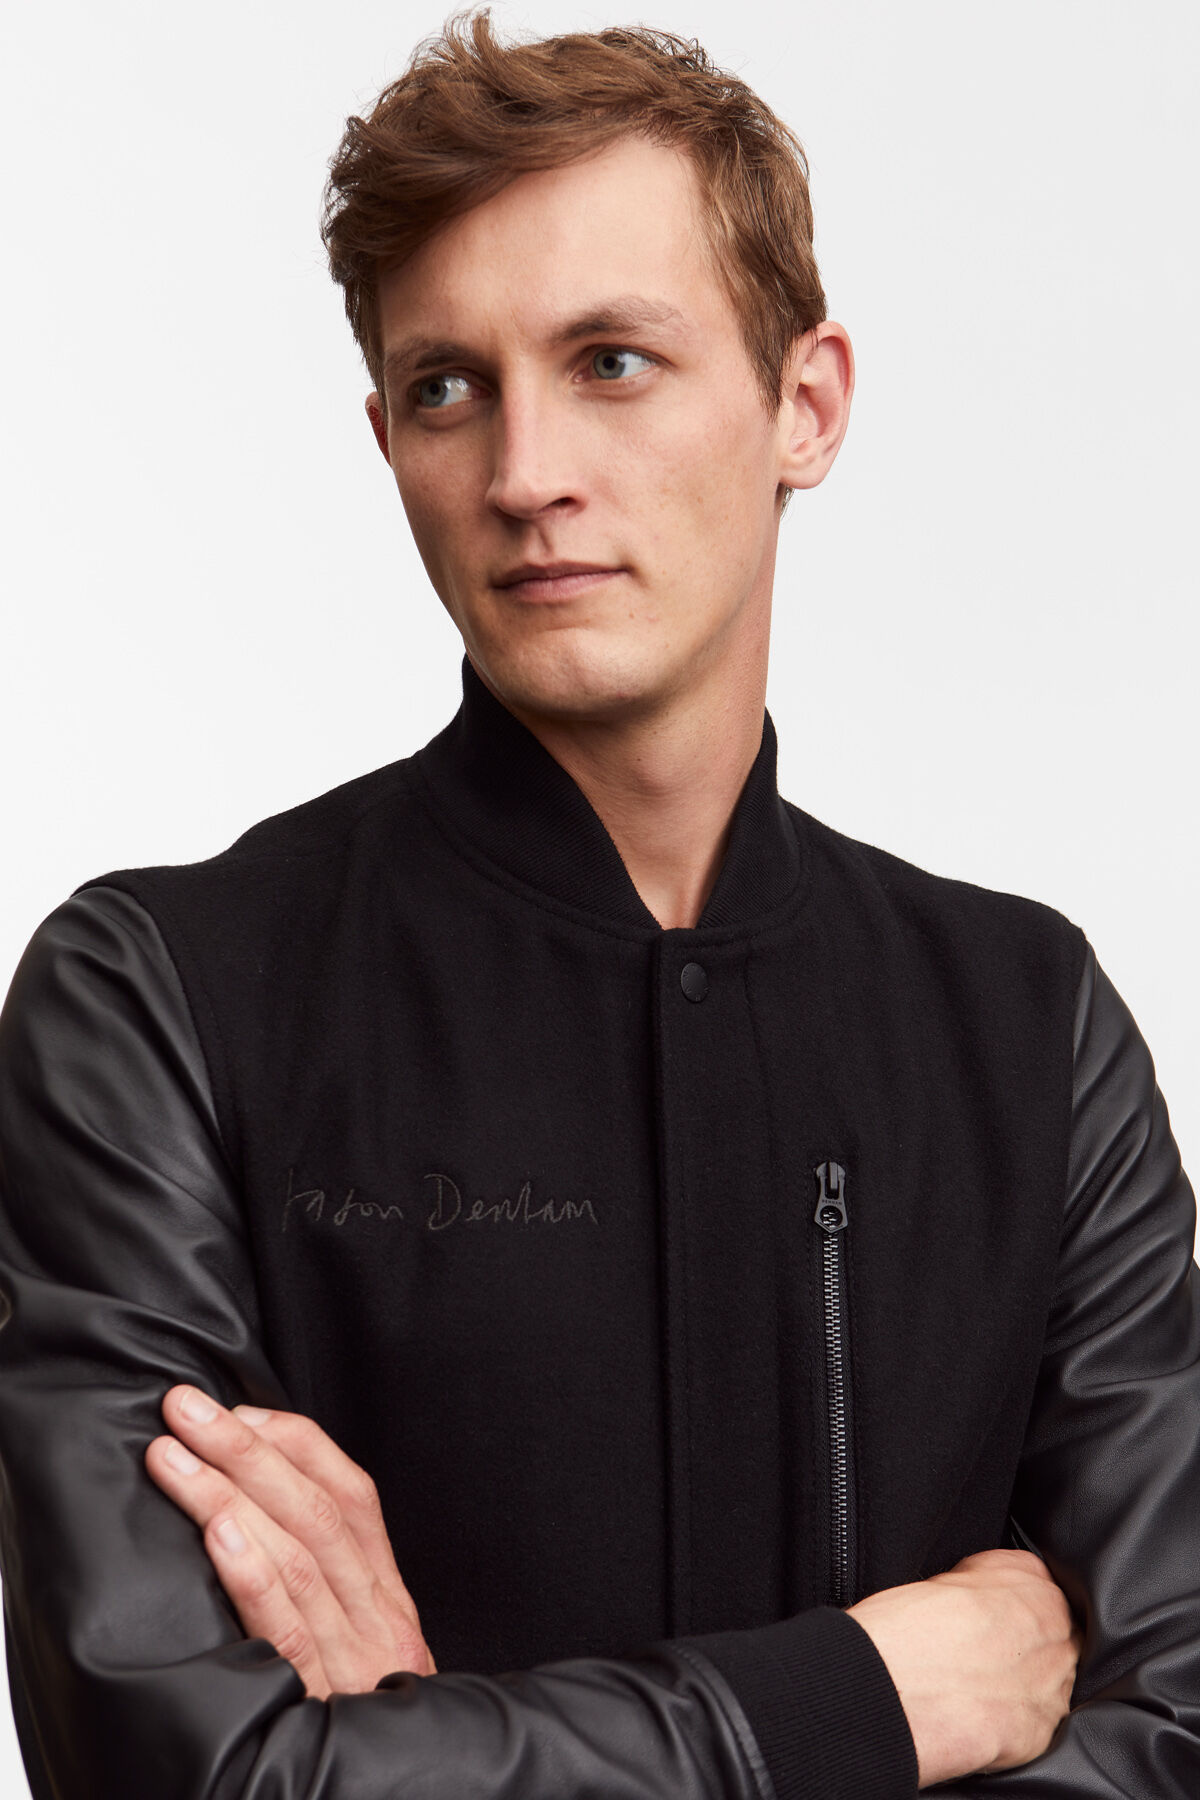 ANDERSON BOMBER JACKET Wool and Leather Blend - Regular Fit